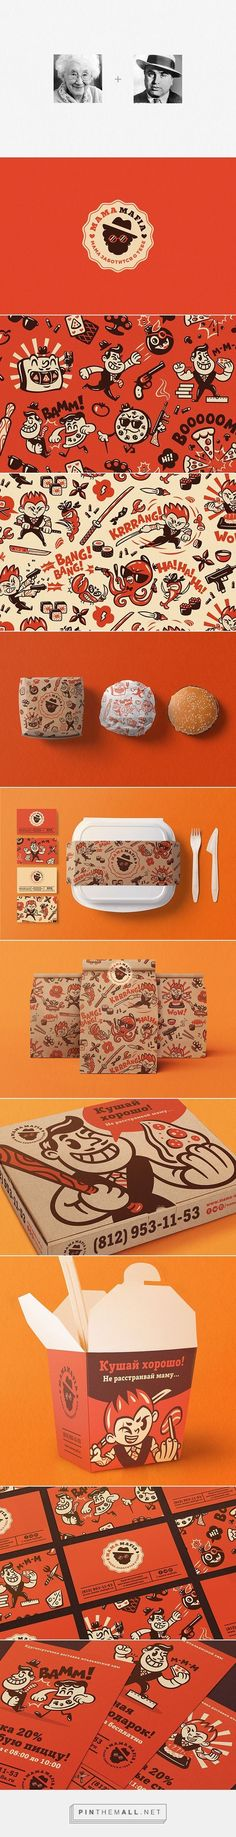 Mama Mafia on Behance by Dima Je curated by Packaging Diva PD. Delivery service packaging which specializes in Italian and Japanese cuisines. Brand Identity Design, Graphic Design Typography, Lettering Design, Graphic Design Illustration, Branding Design, Logo Design, Web Design, Food Branding, Restaurant Branding